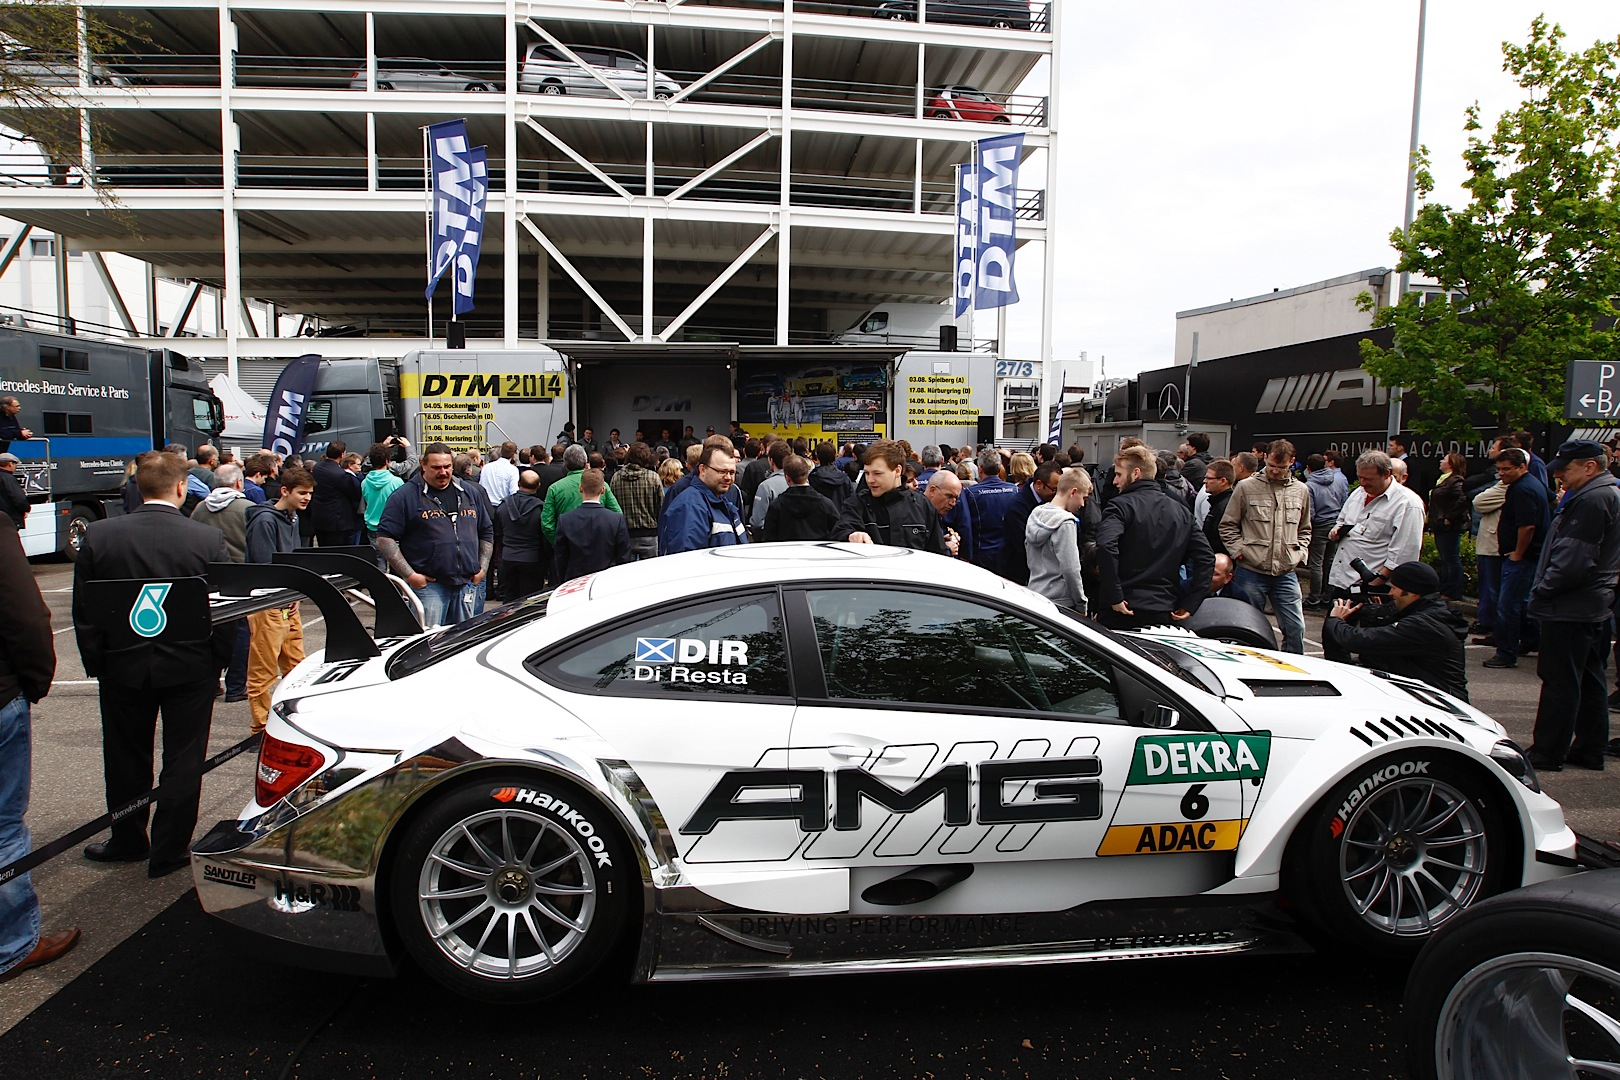 2014 dtm mercedes benz teams present themselves to for Mercedes benz employee salary